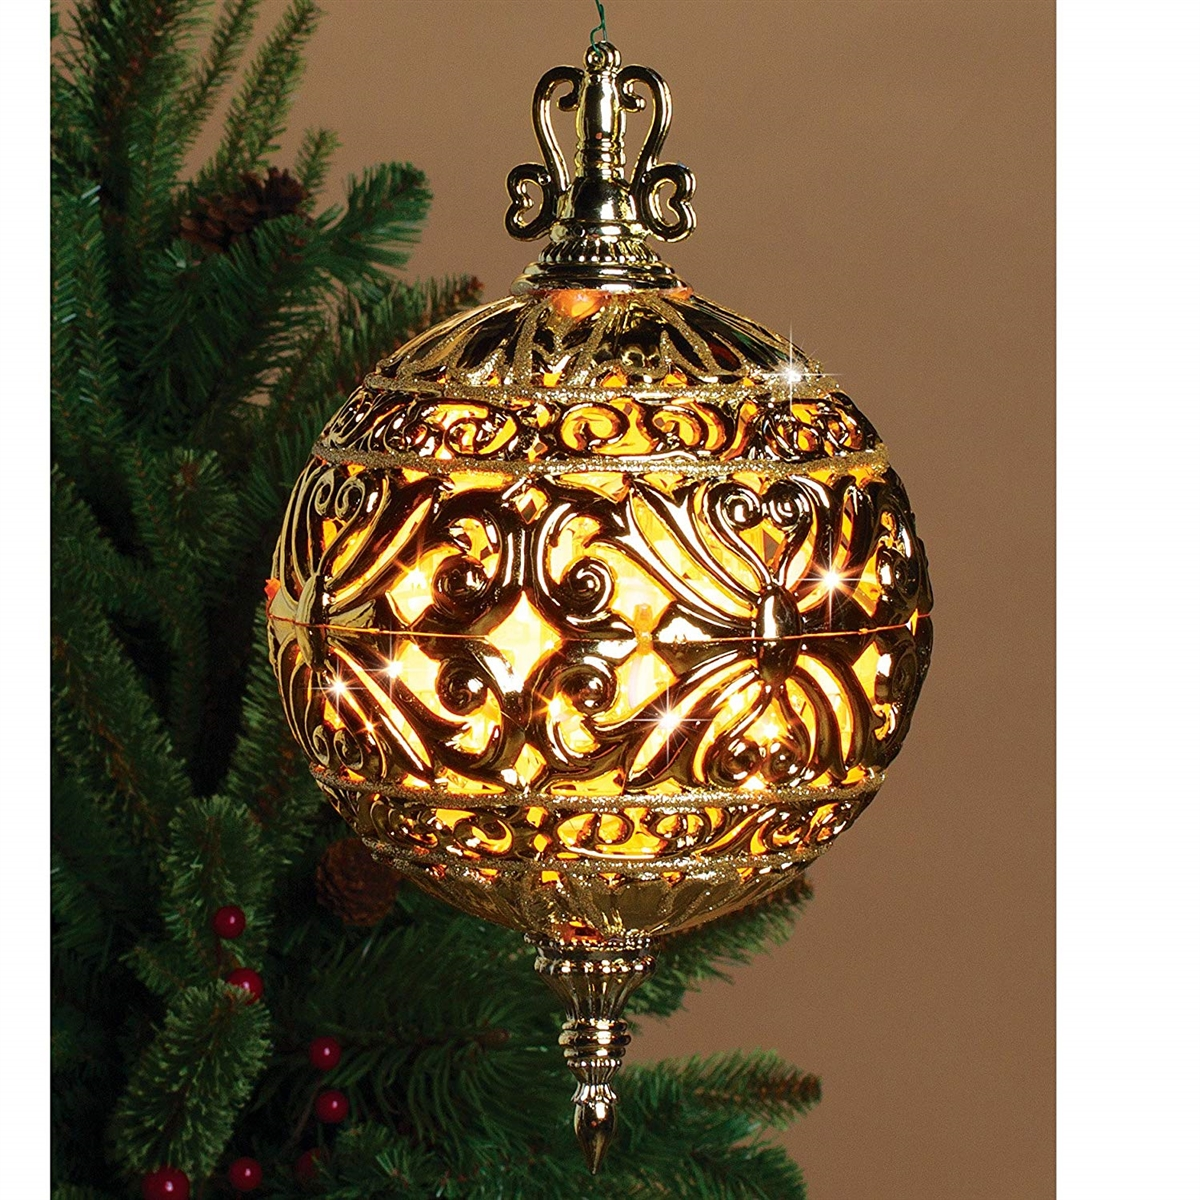 GERSON 6 Inch Lighted Filigree Ball Christmas Ornament Indoor Outdoor Decor  , Prelit (GOLD)